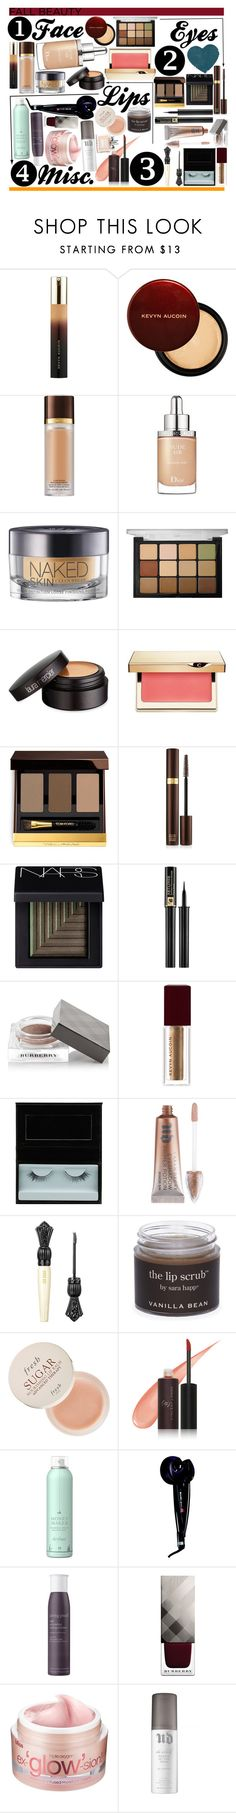 """Contest:: Fall Date Night (Beauty)"" by sbhackney ❤ liked on Polyvore featuring beauty, Kevyn Aucoin, Tom Ford, Christian Dior, Urban Decay, Viseart, Laura Mercier, Clarins, NARS Cosmetics and Lancôme"